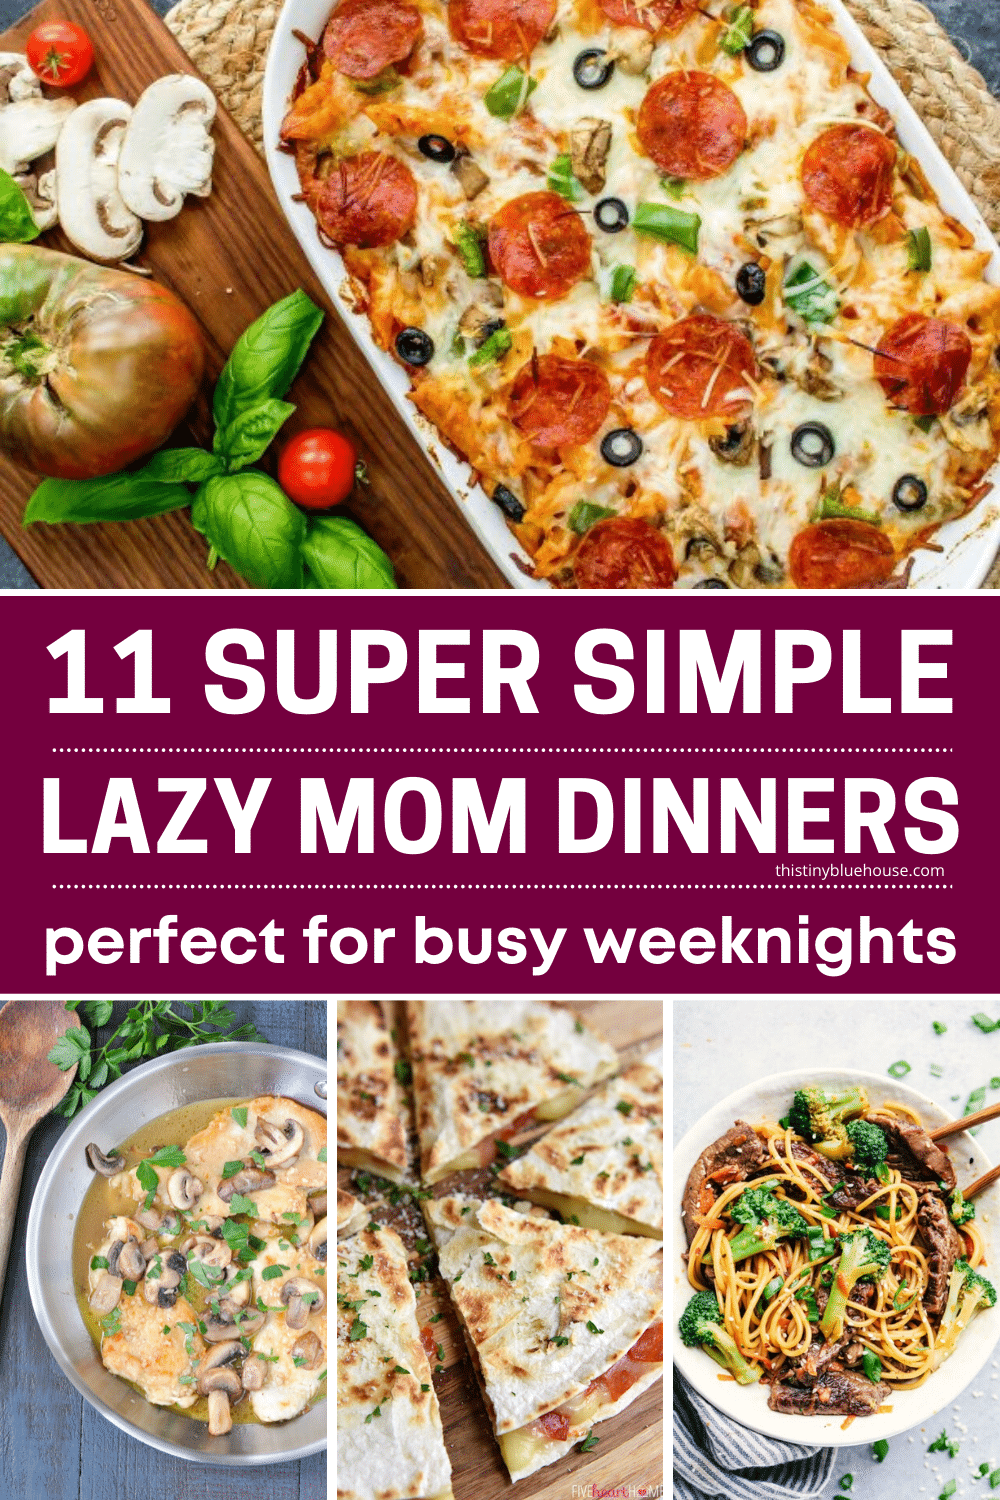 11 Super Simple Lazy Mom Dinners